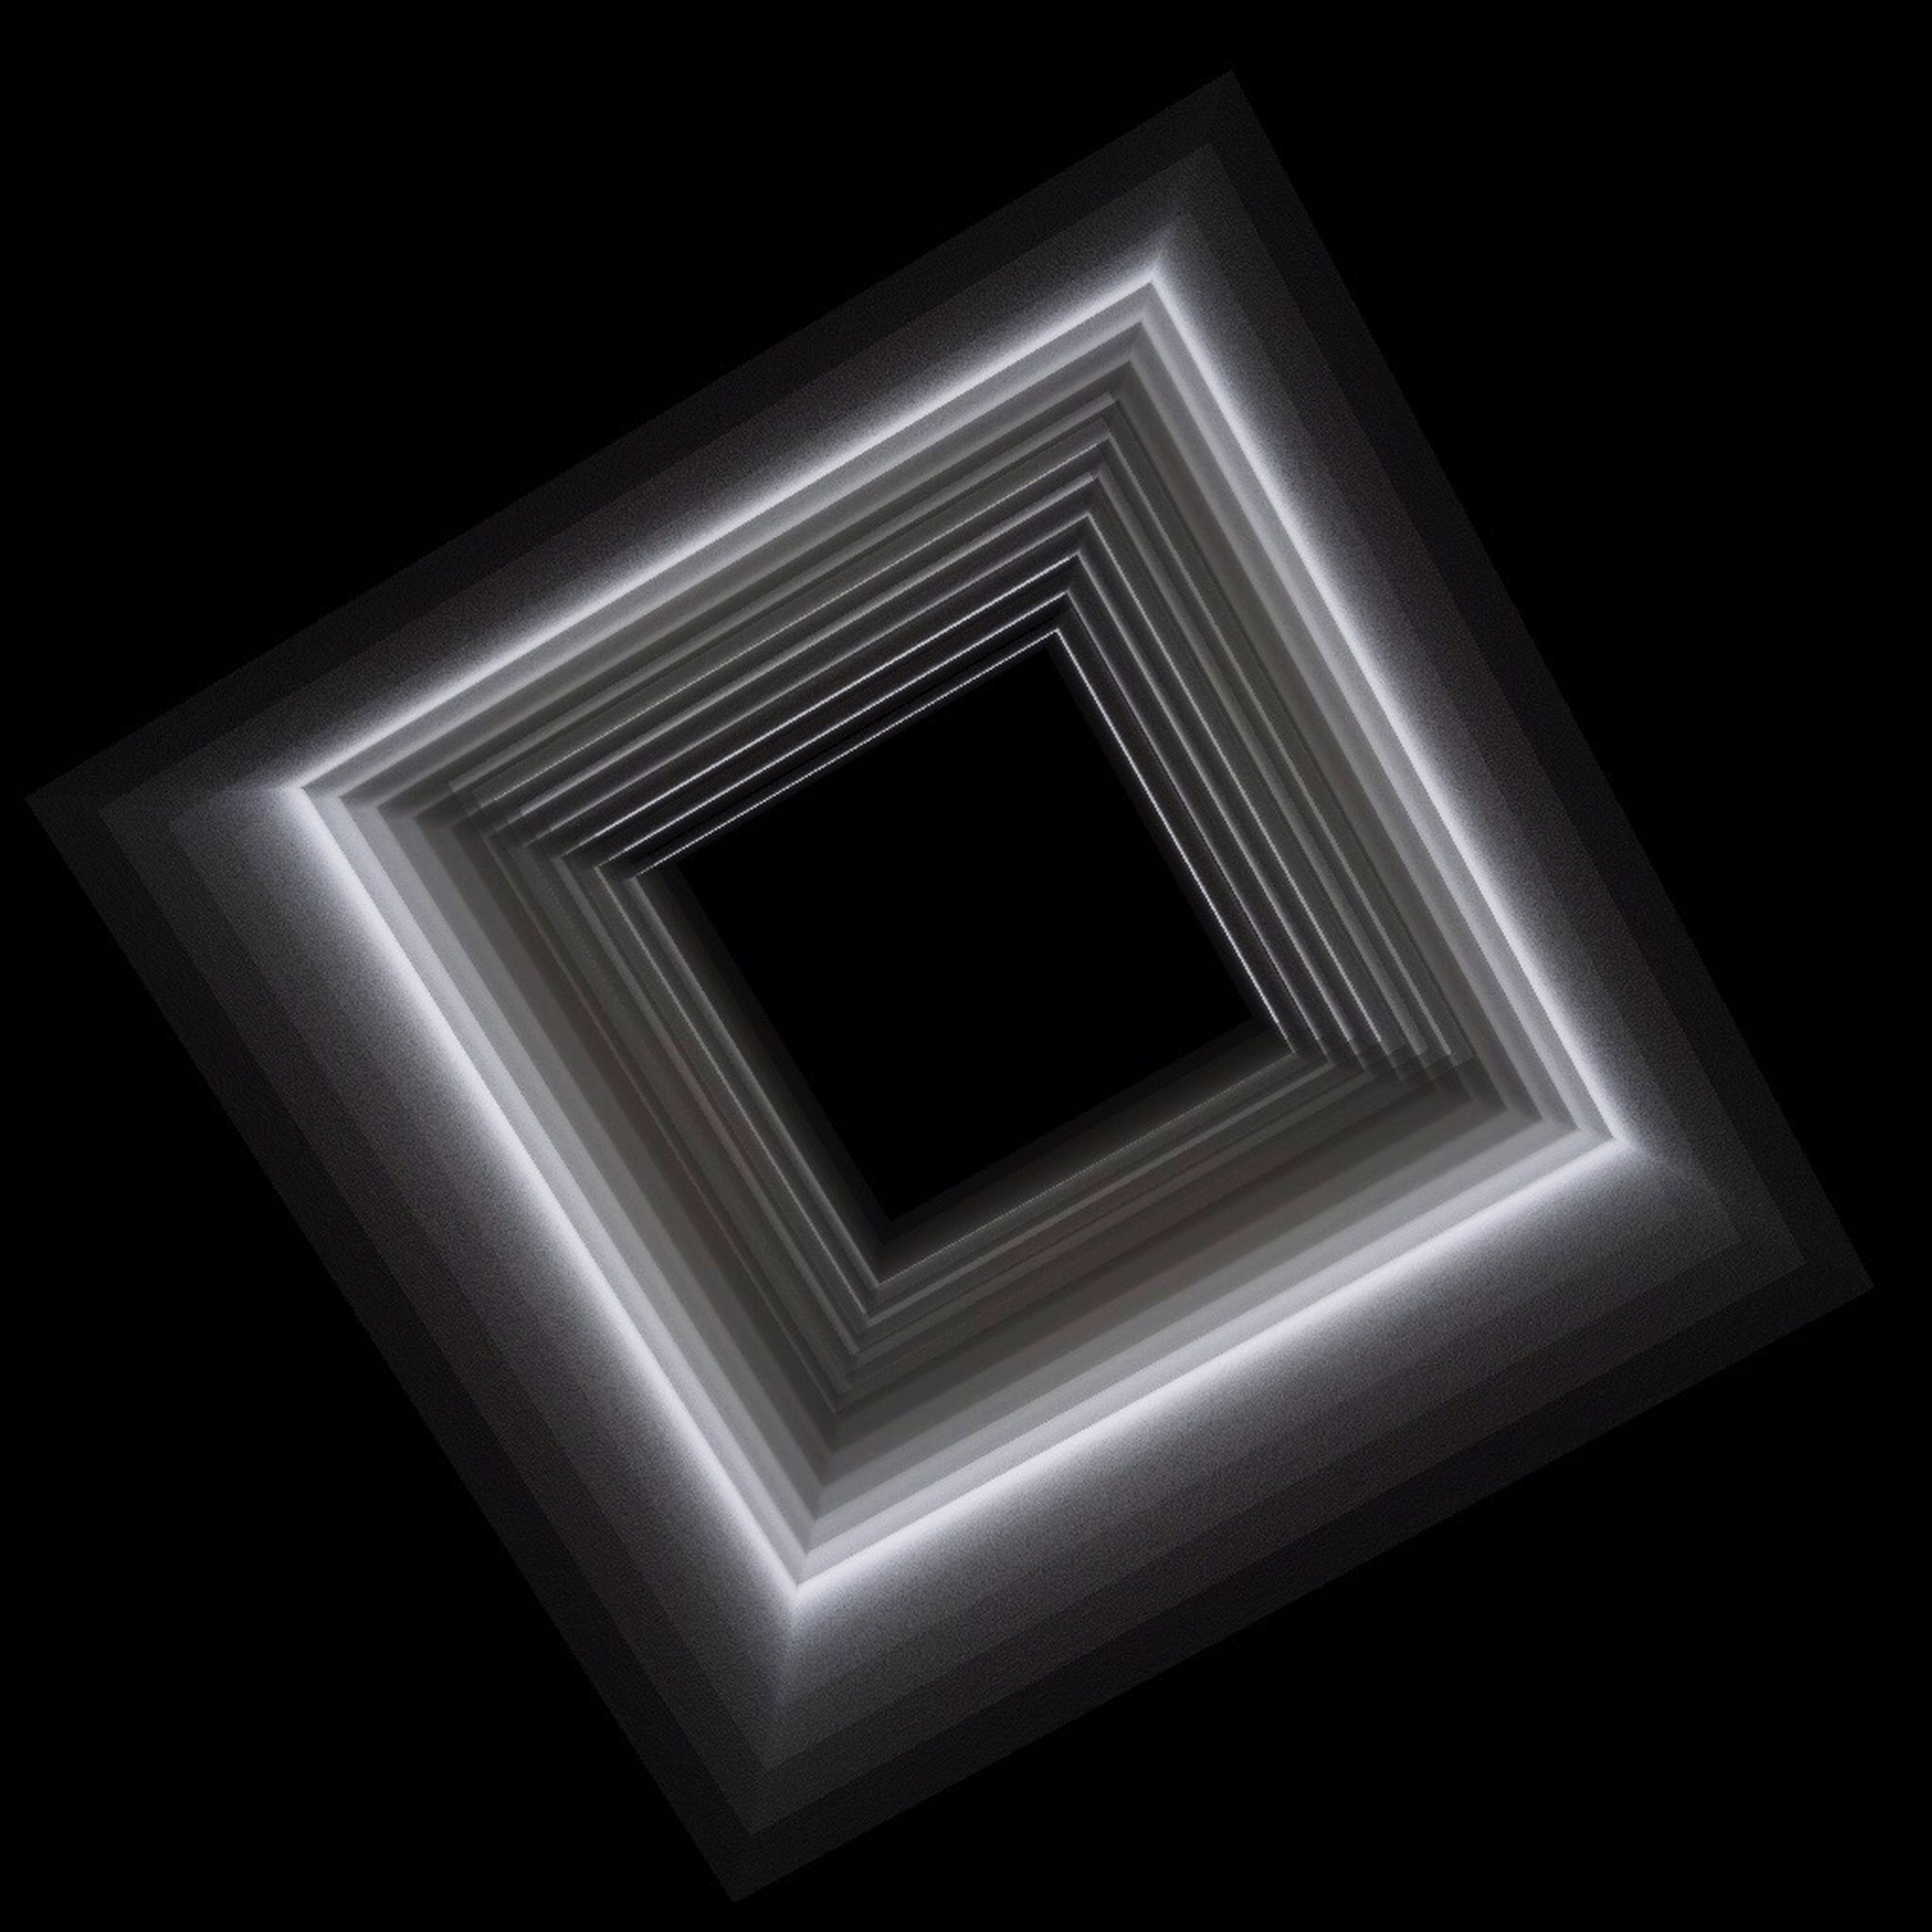 illuminated, indoors, low angle view, lighting equipment, glowing, architecture, built structure, pattern, night, geometric shape, black background, no people, light - natural phenomenon, dark, studio shot, design, close-up, copy space, abstract, shape